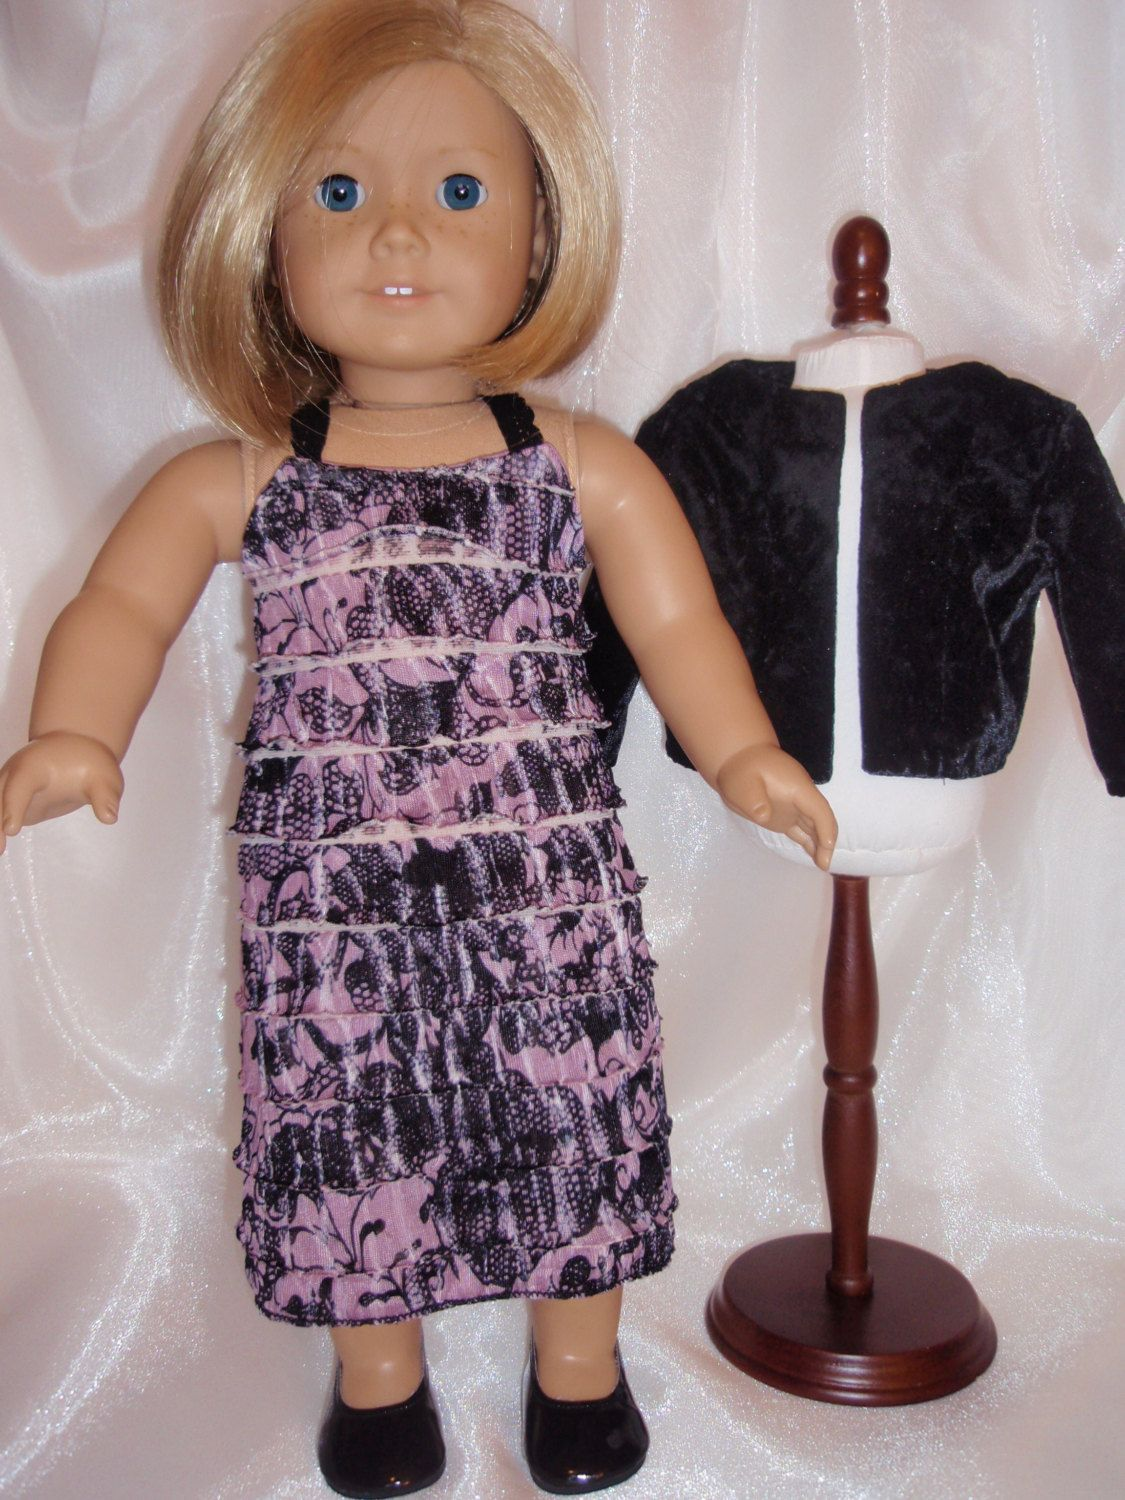 18 Inch Doll Spaghetti Strap Ruffled Dress and Jacket by Karensdollkreations on Etsy